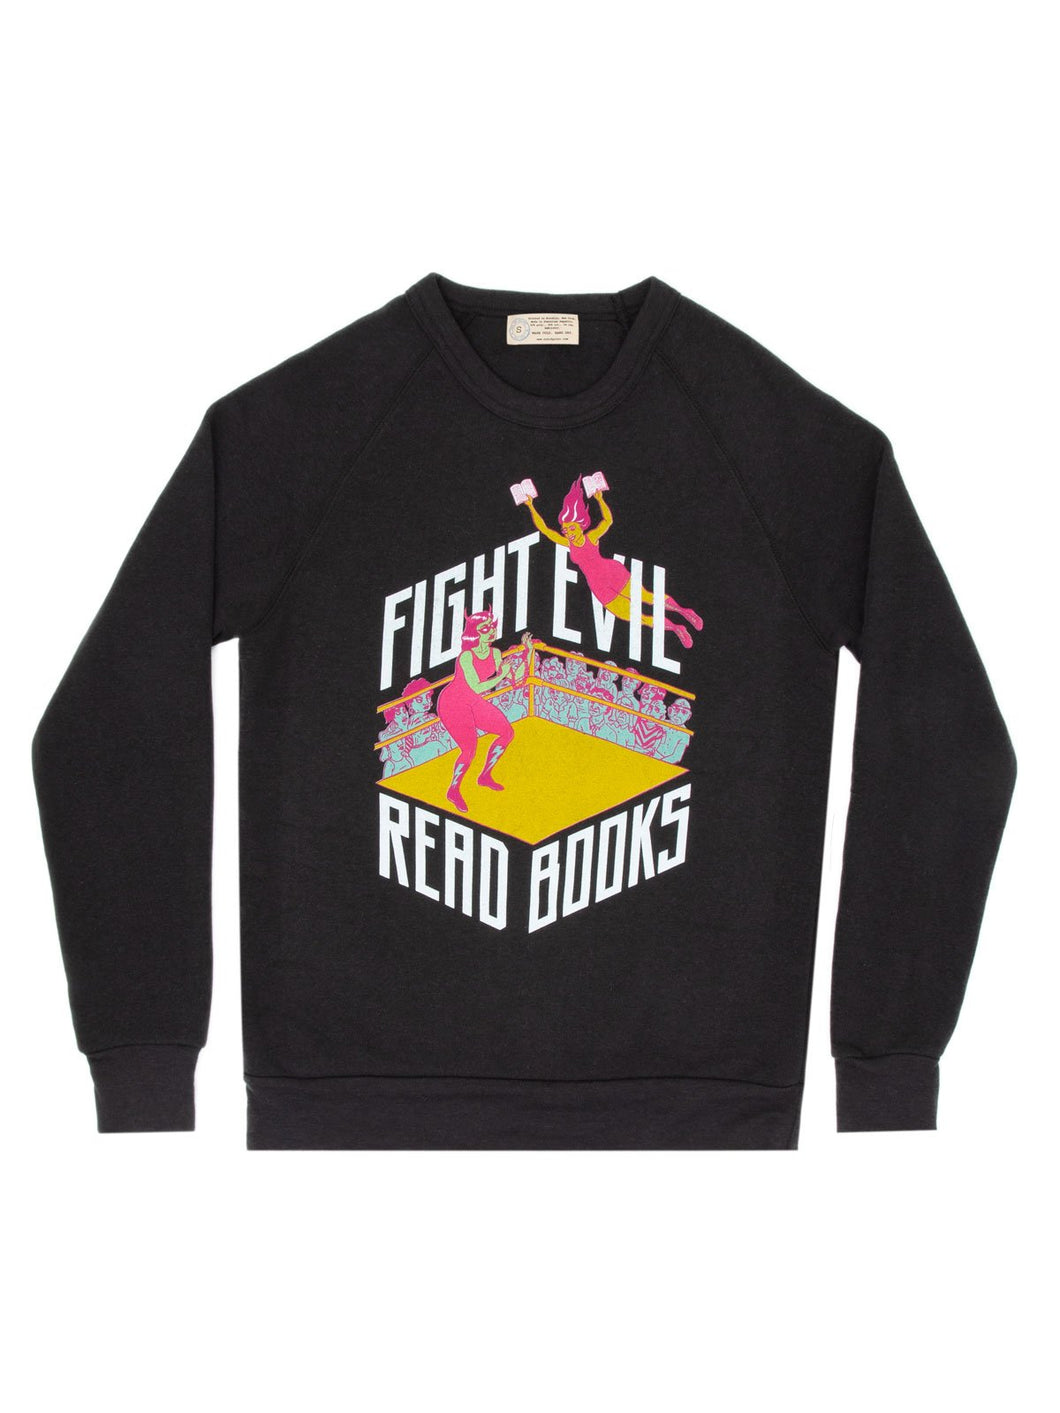 Fight Evil, Read Books Sweatshirt (Unisex)